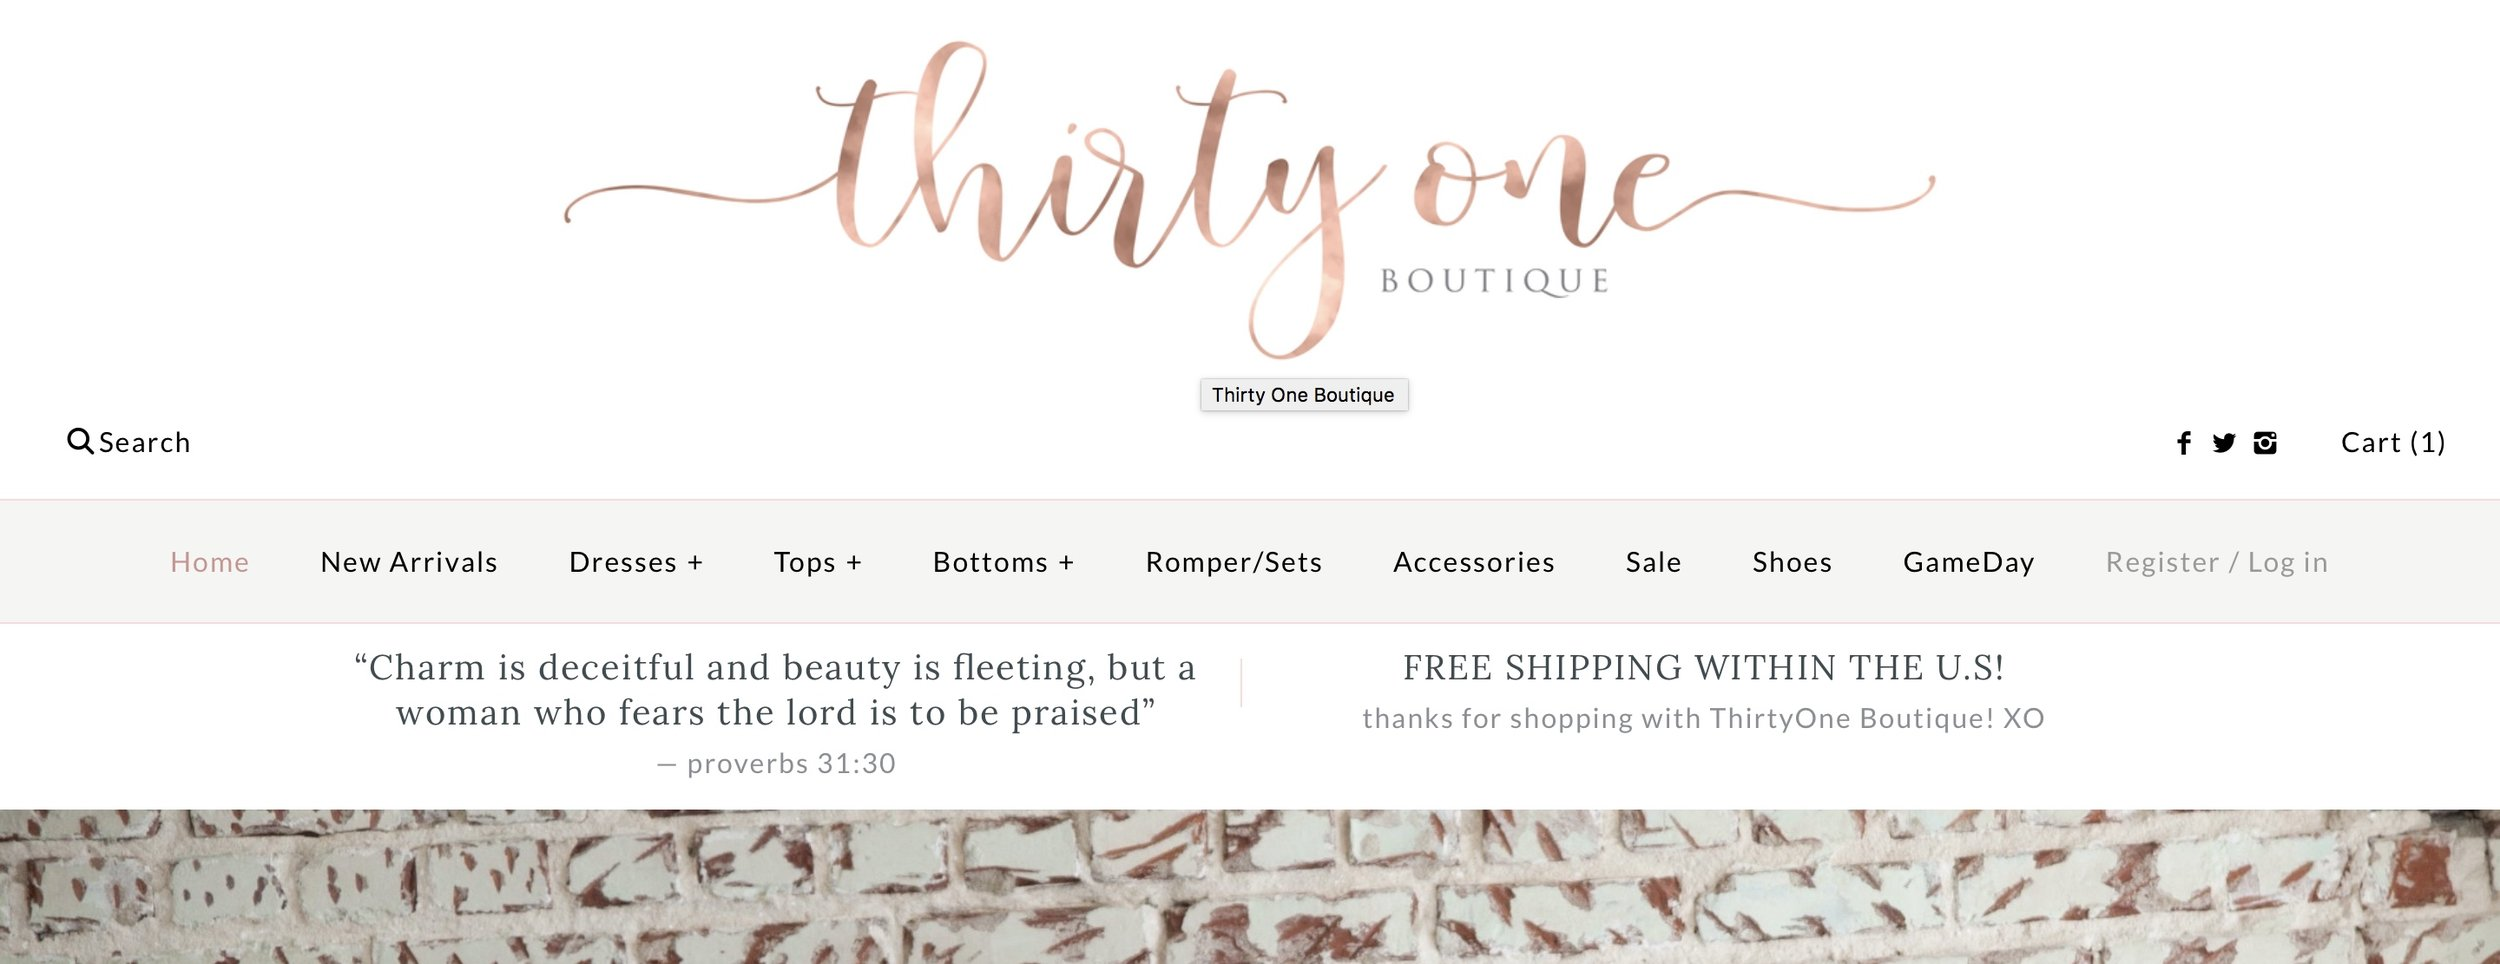 No. 2 - Thirty One Boutique